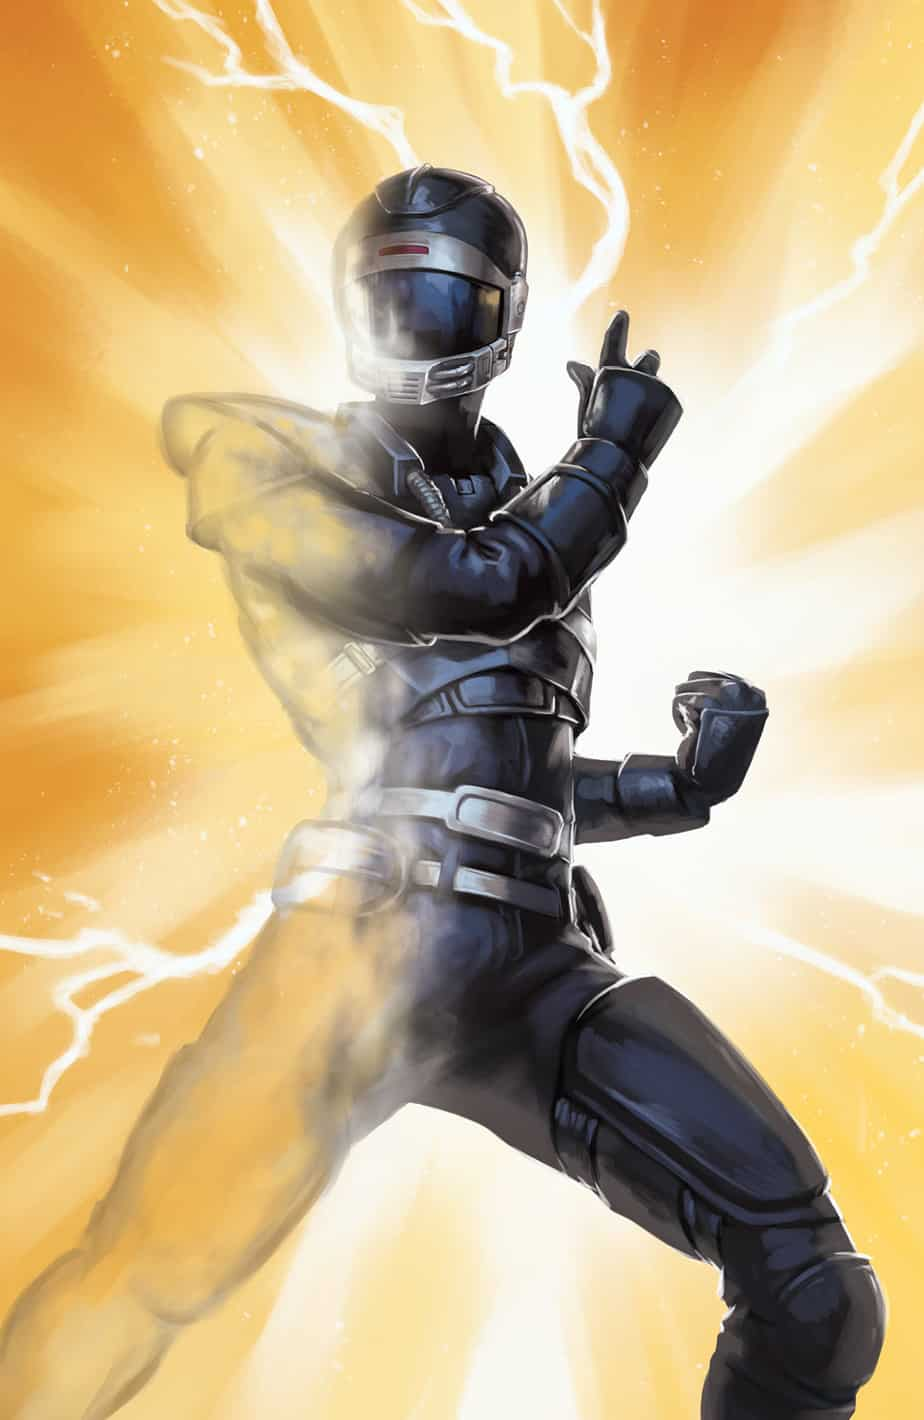 MIGHTY MORPHIN POWER RANGERS #36 - Incentive Cover